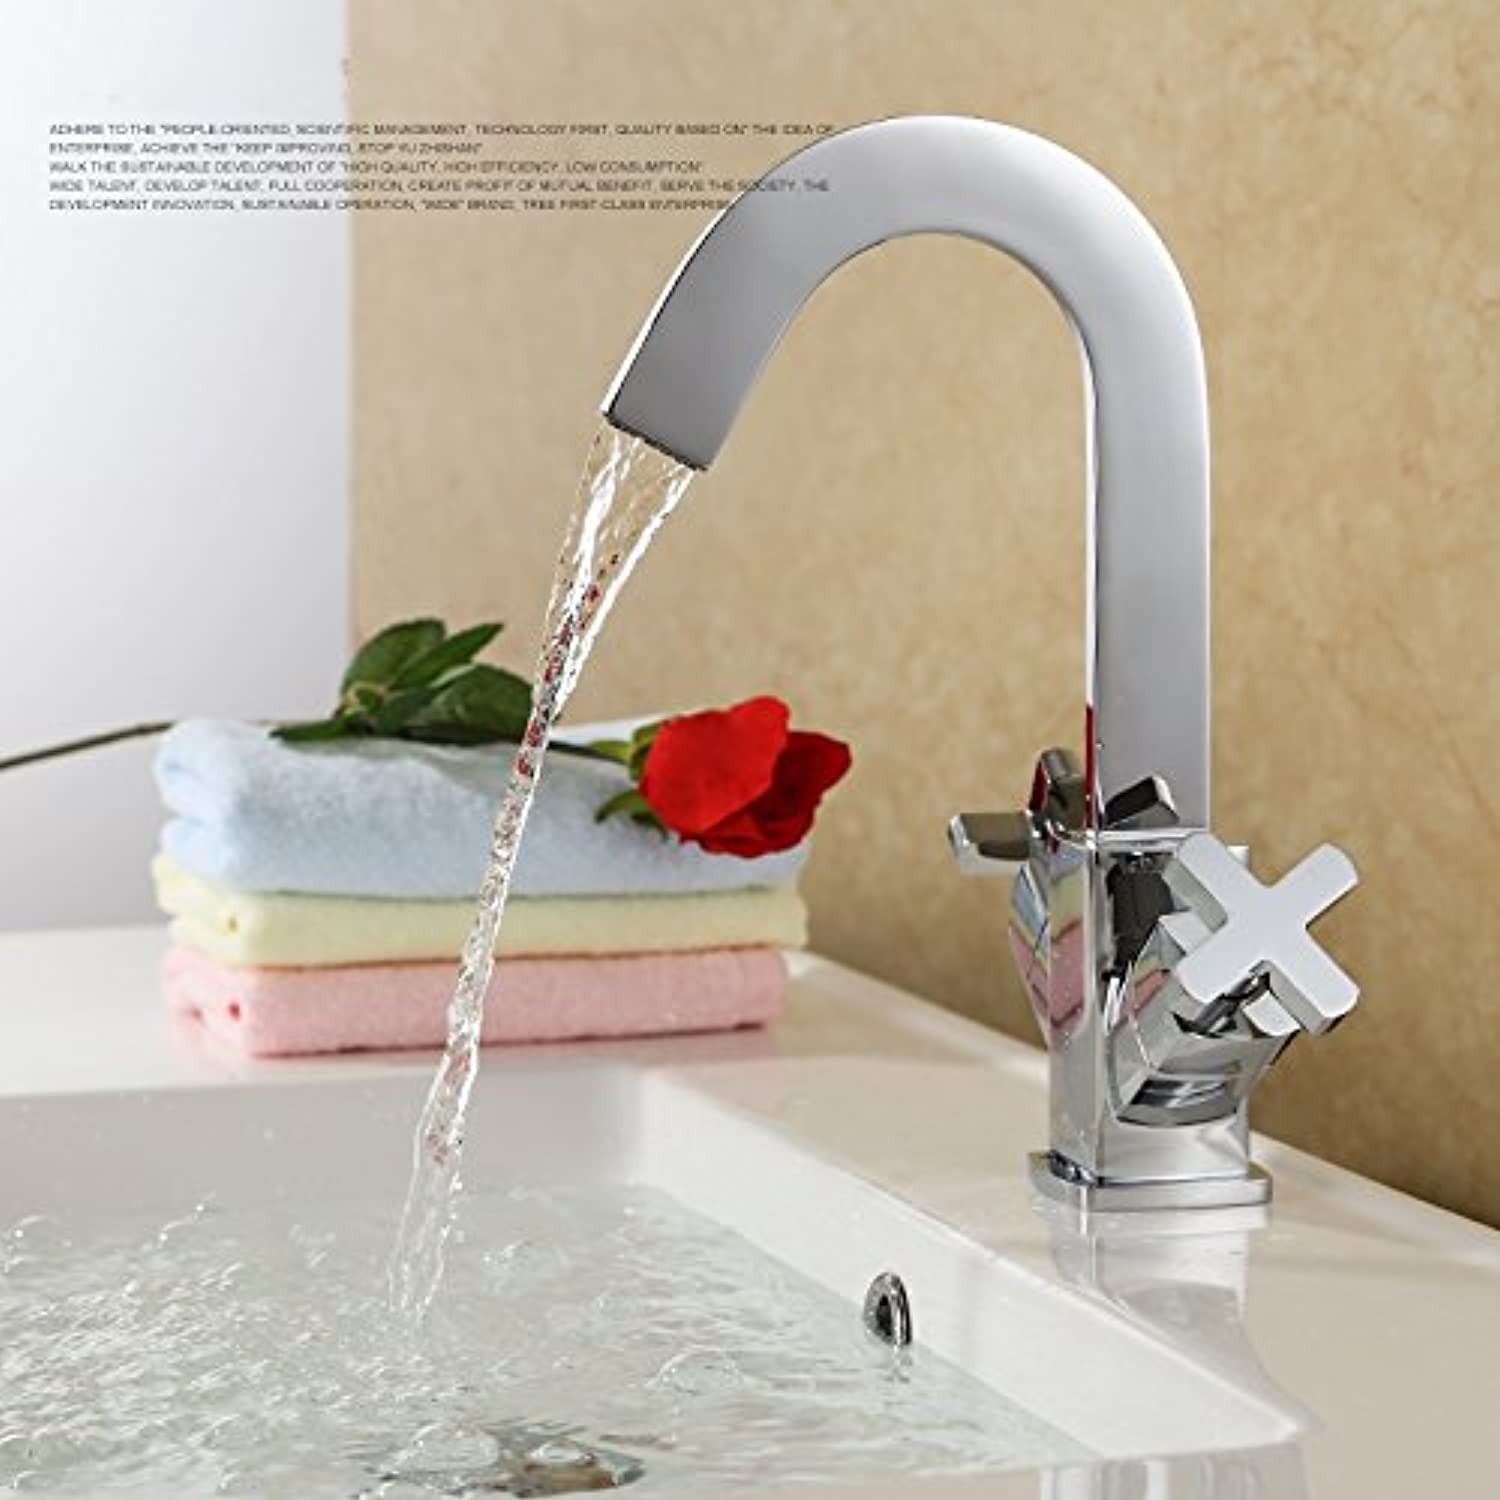 CZOOR Bathroom Sink Mixer Tap Chrome Bathroom Solid Brass Two Handle Double Control Square Basin Faucet Lavatory Mixer Faucet Hot And Cold Water Tap, Chrome